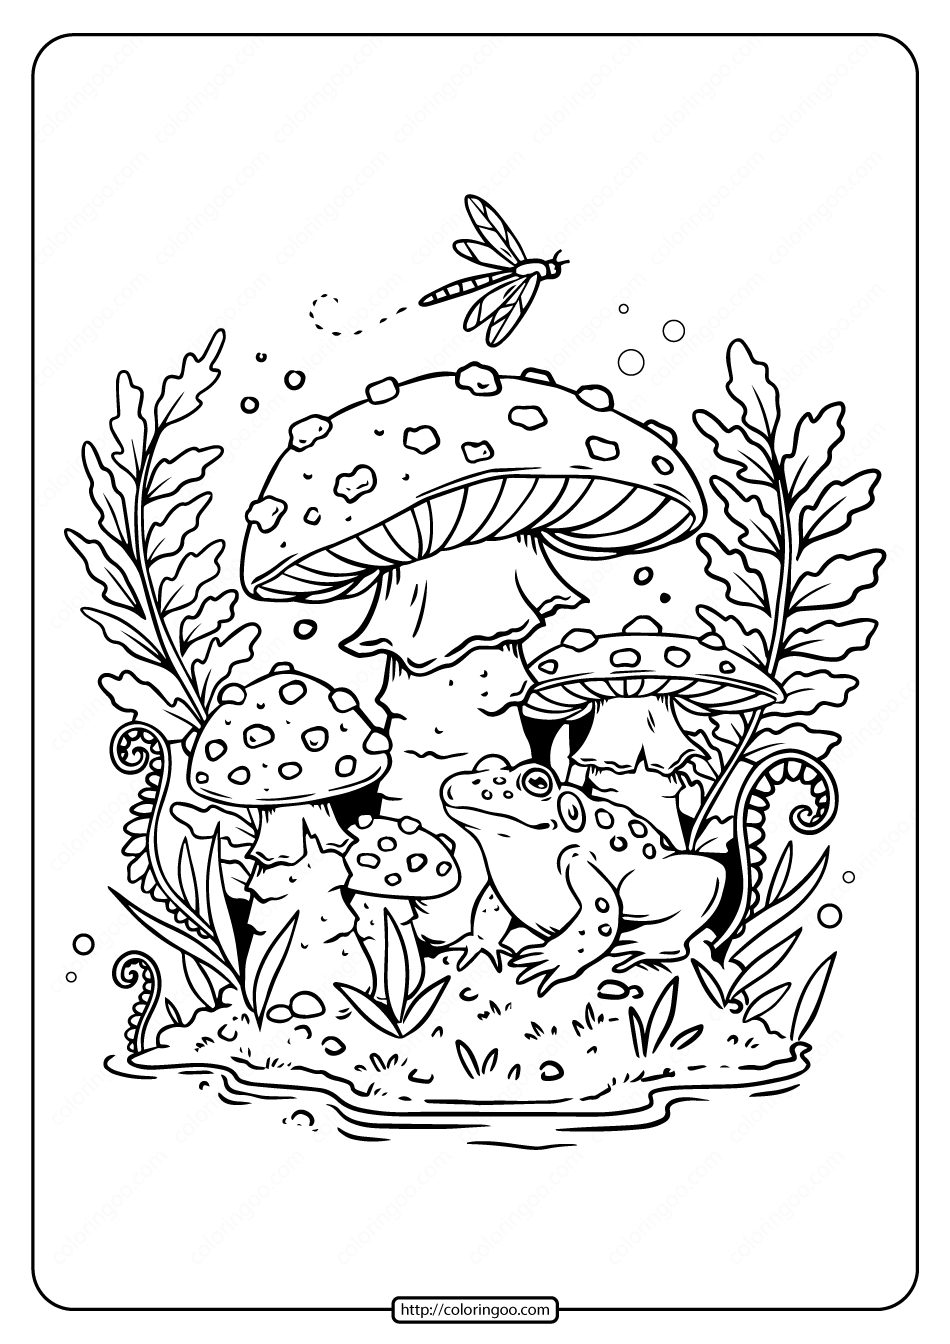 frog and toad coloring sheets the princess and the frog to print for free the princess and frog coloring toad sheets